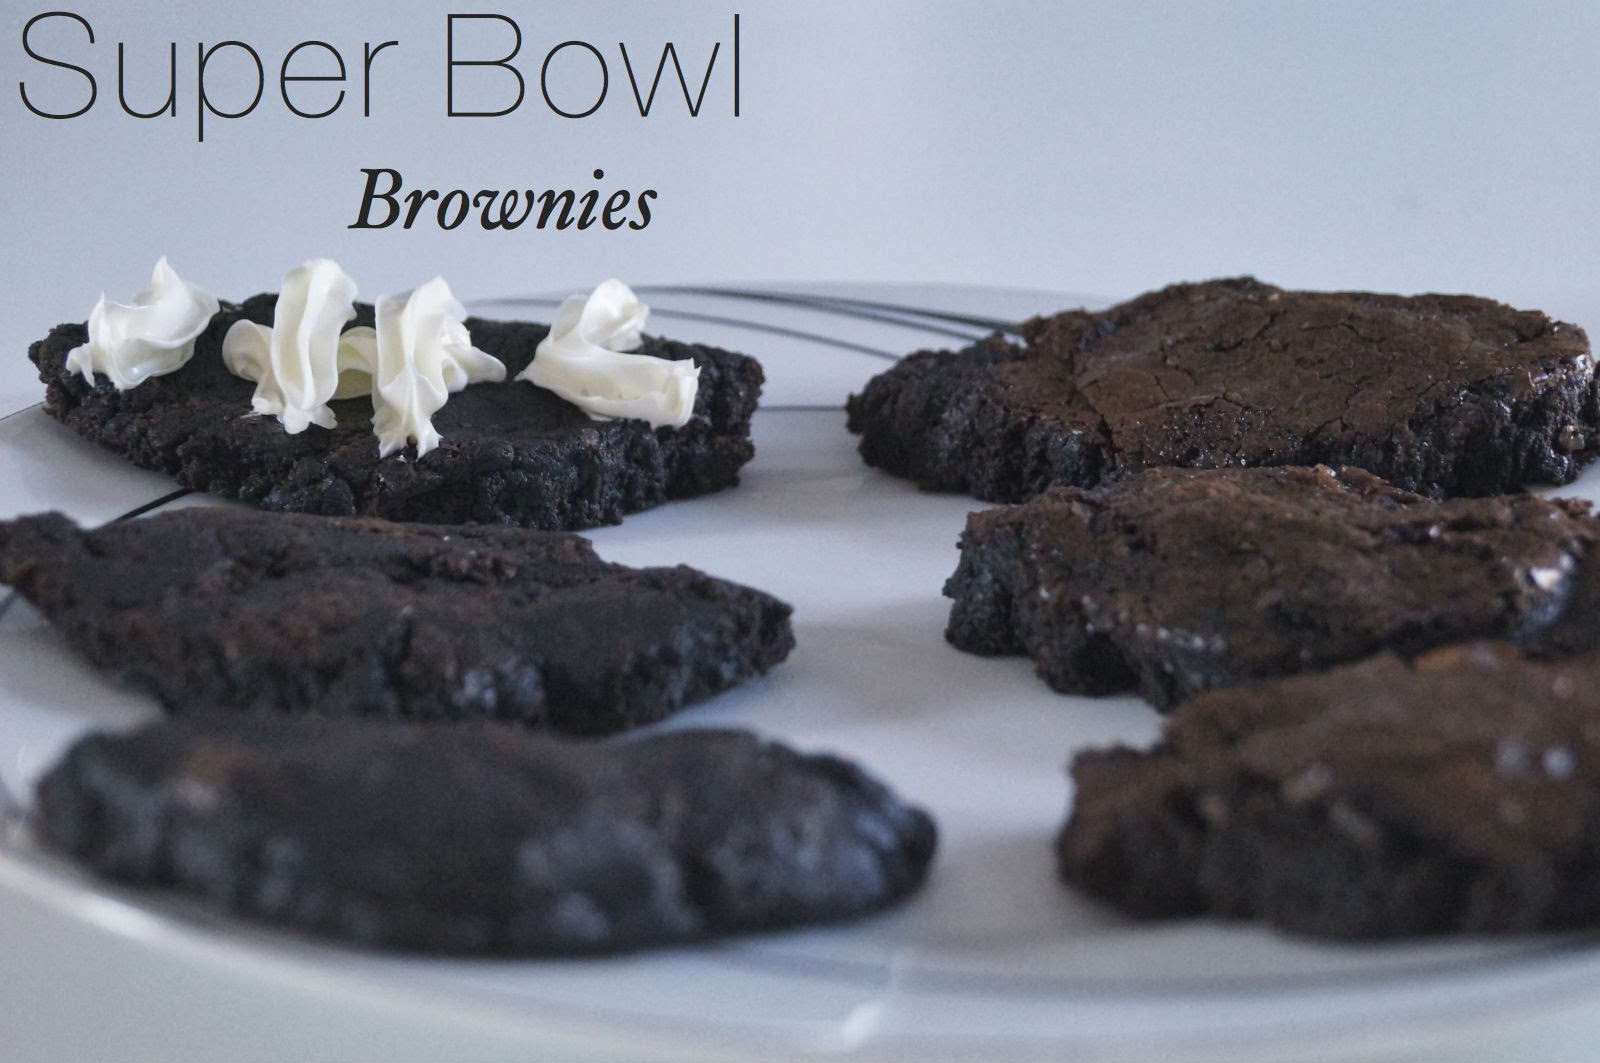 Super Bowl Brownie desserts